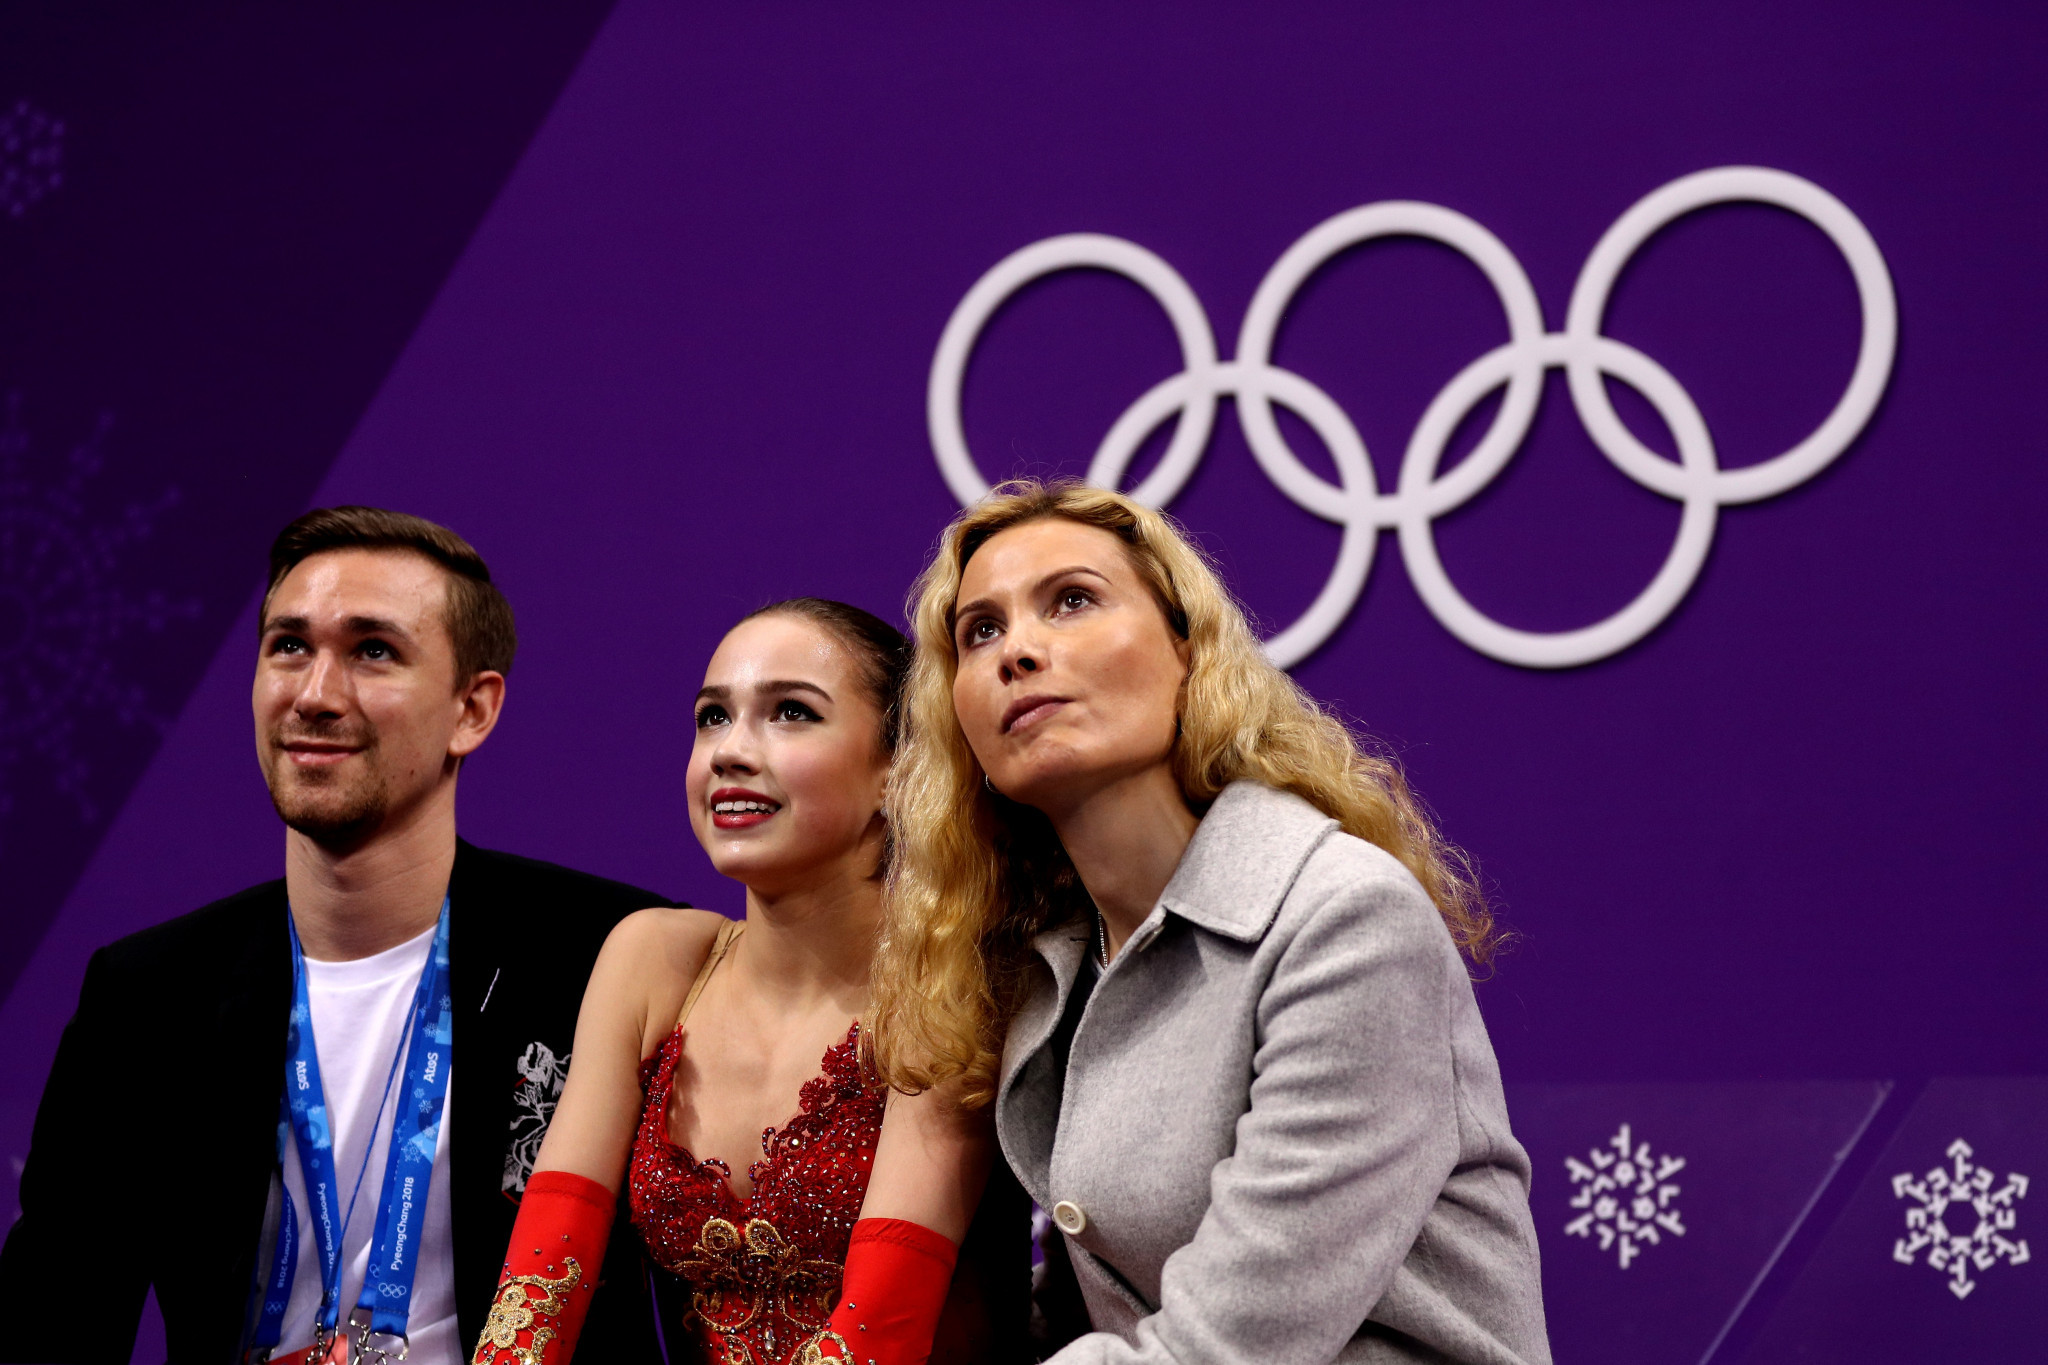 Coach Tutberidze joins Russian figure skaters at Novogorsk training camp